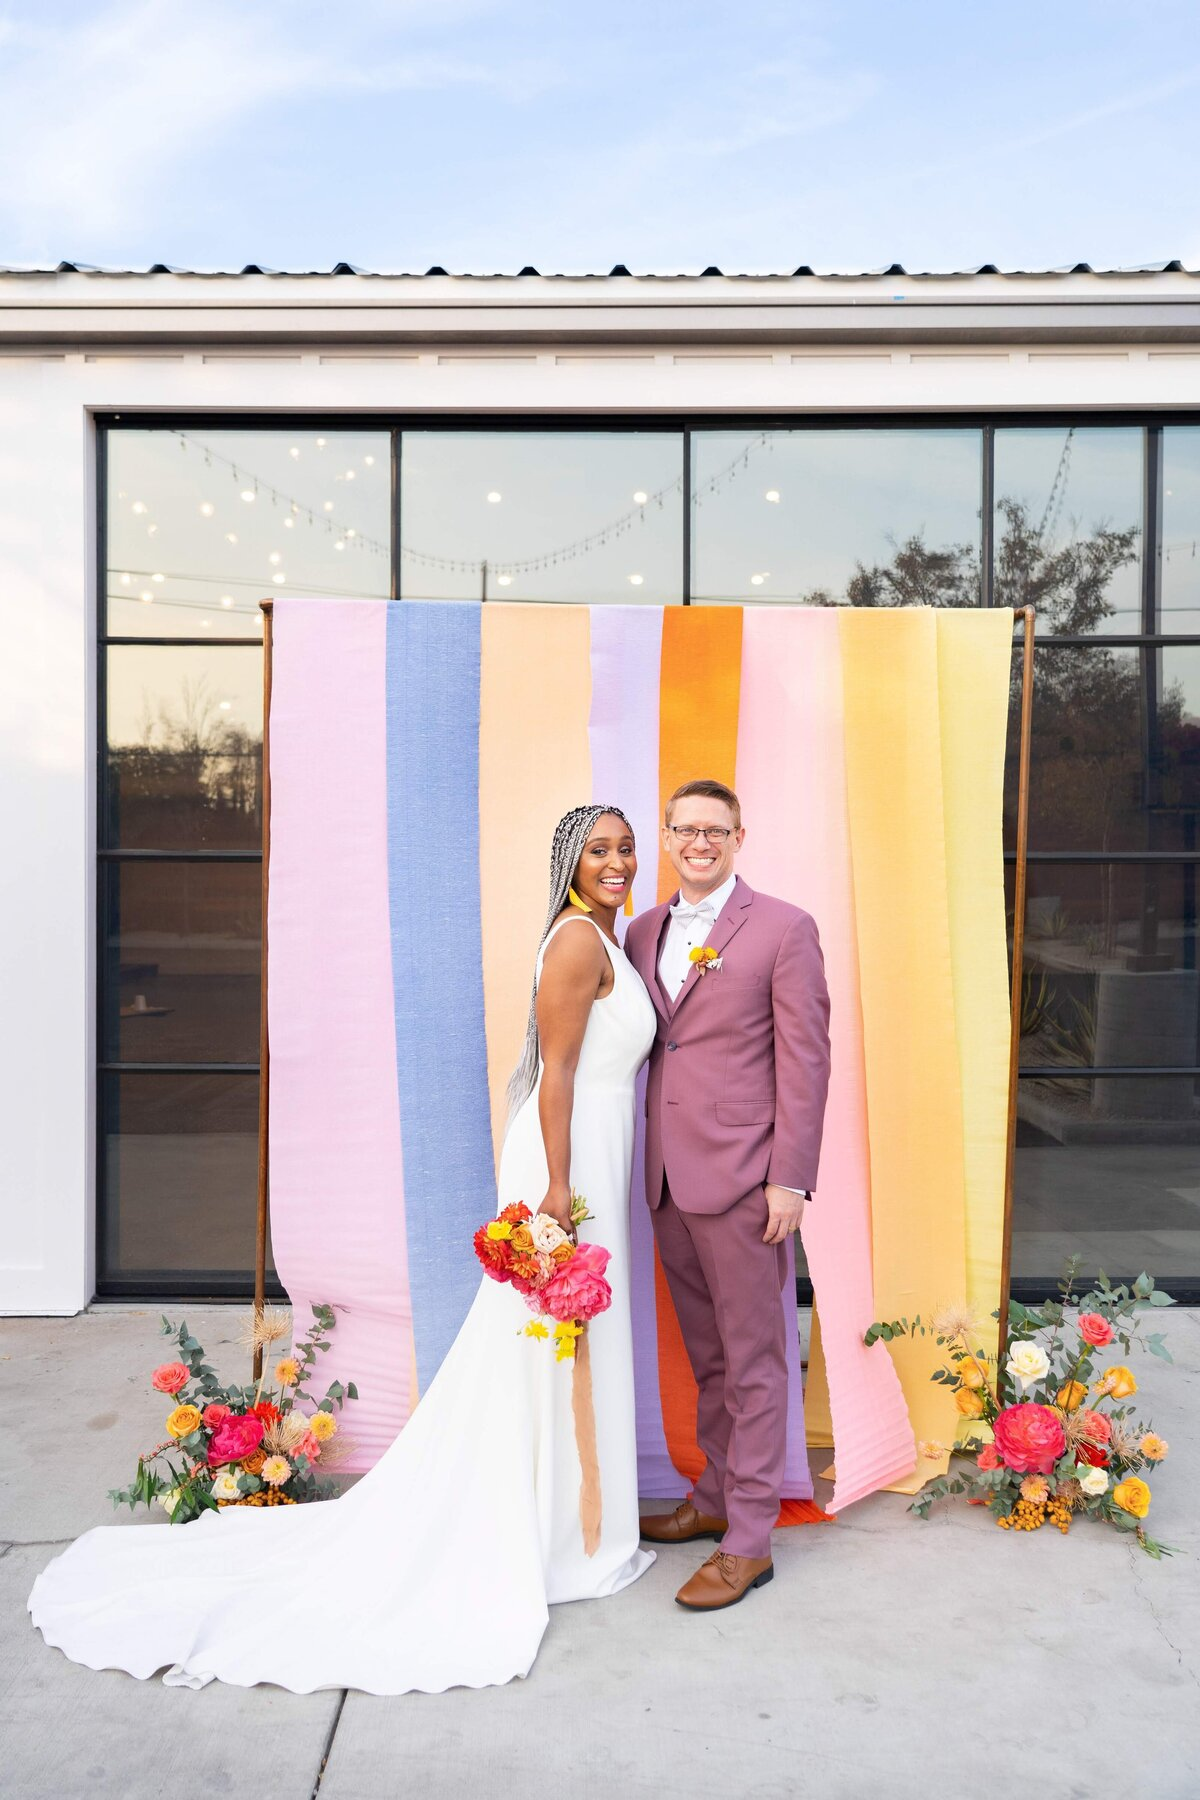 Bride and Groom Colorful Ceremony Backdrop